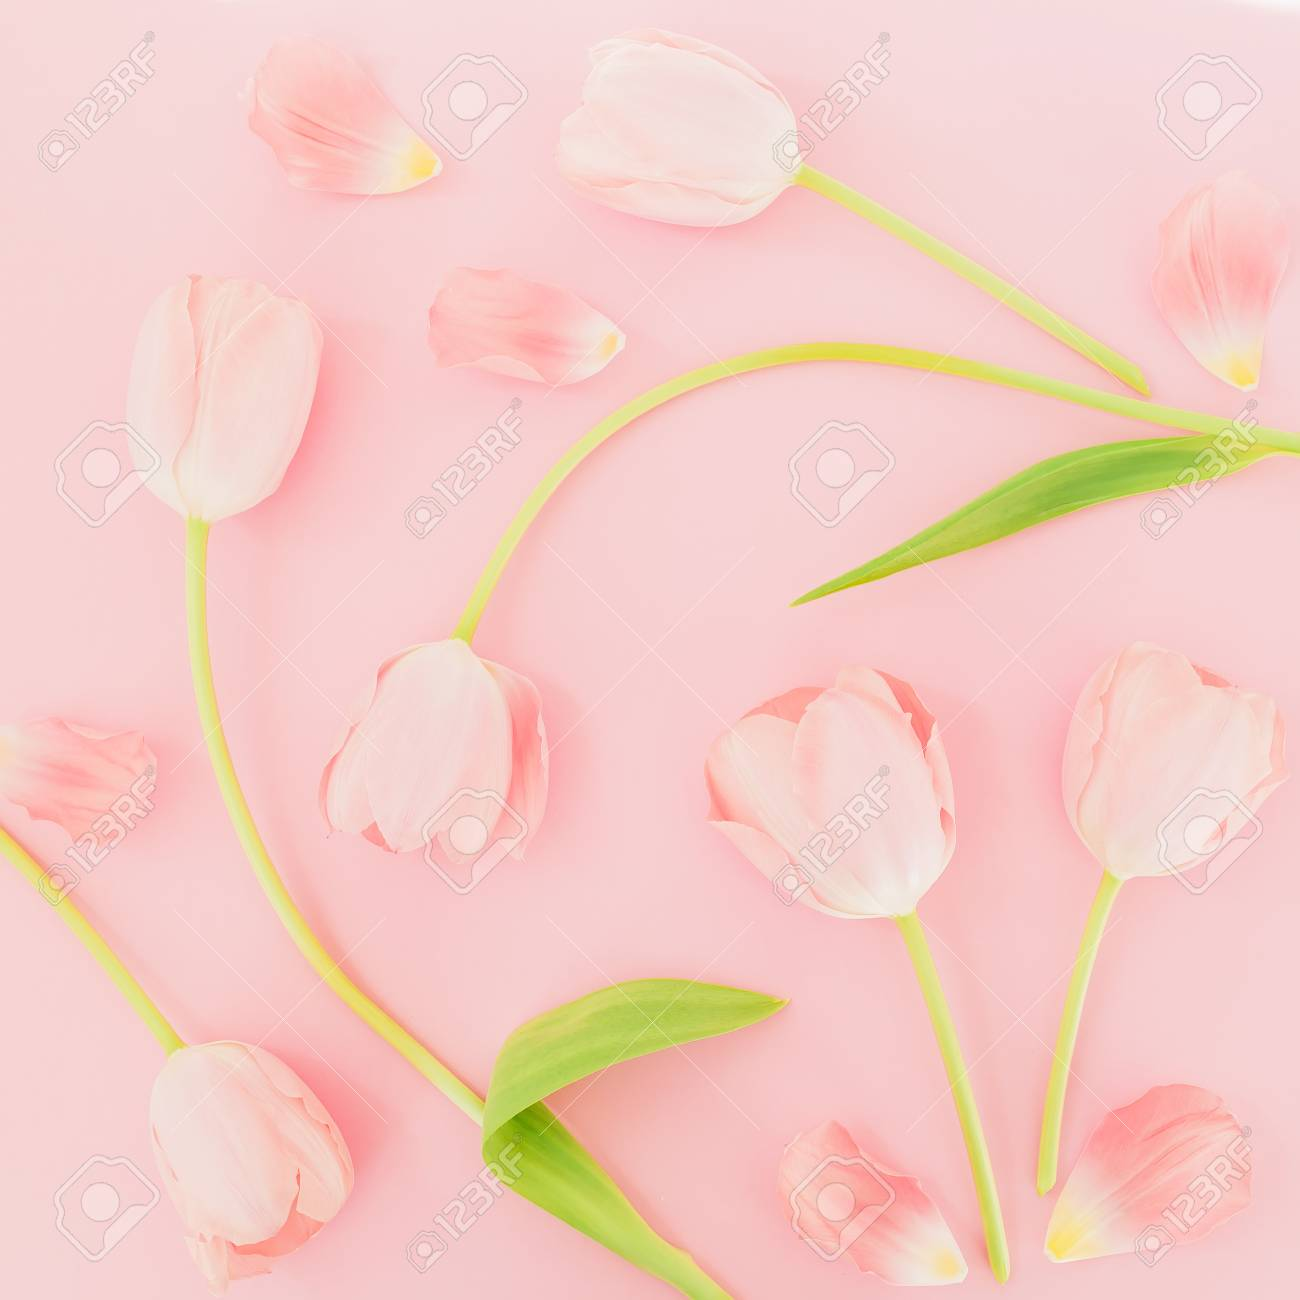 Floral Background With Tulips Flowers On A Pink Pastel Background